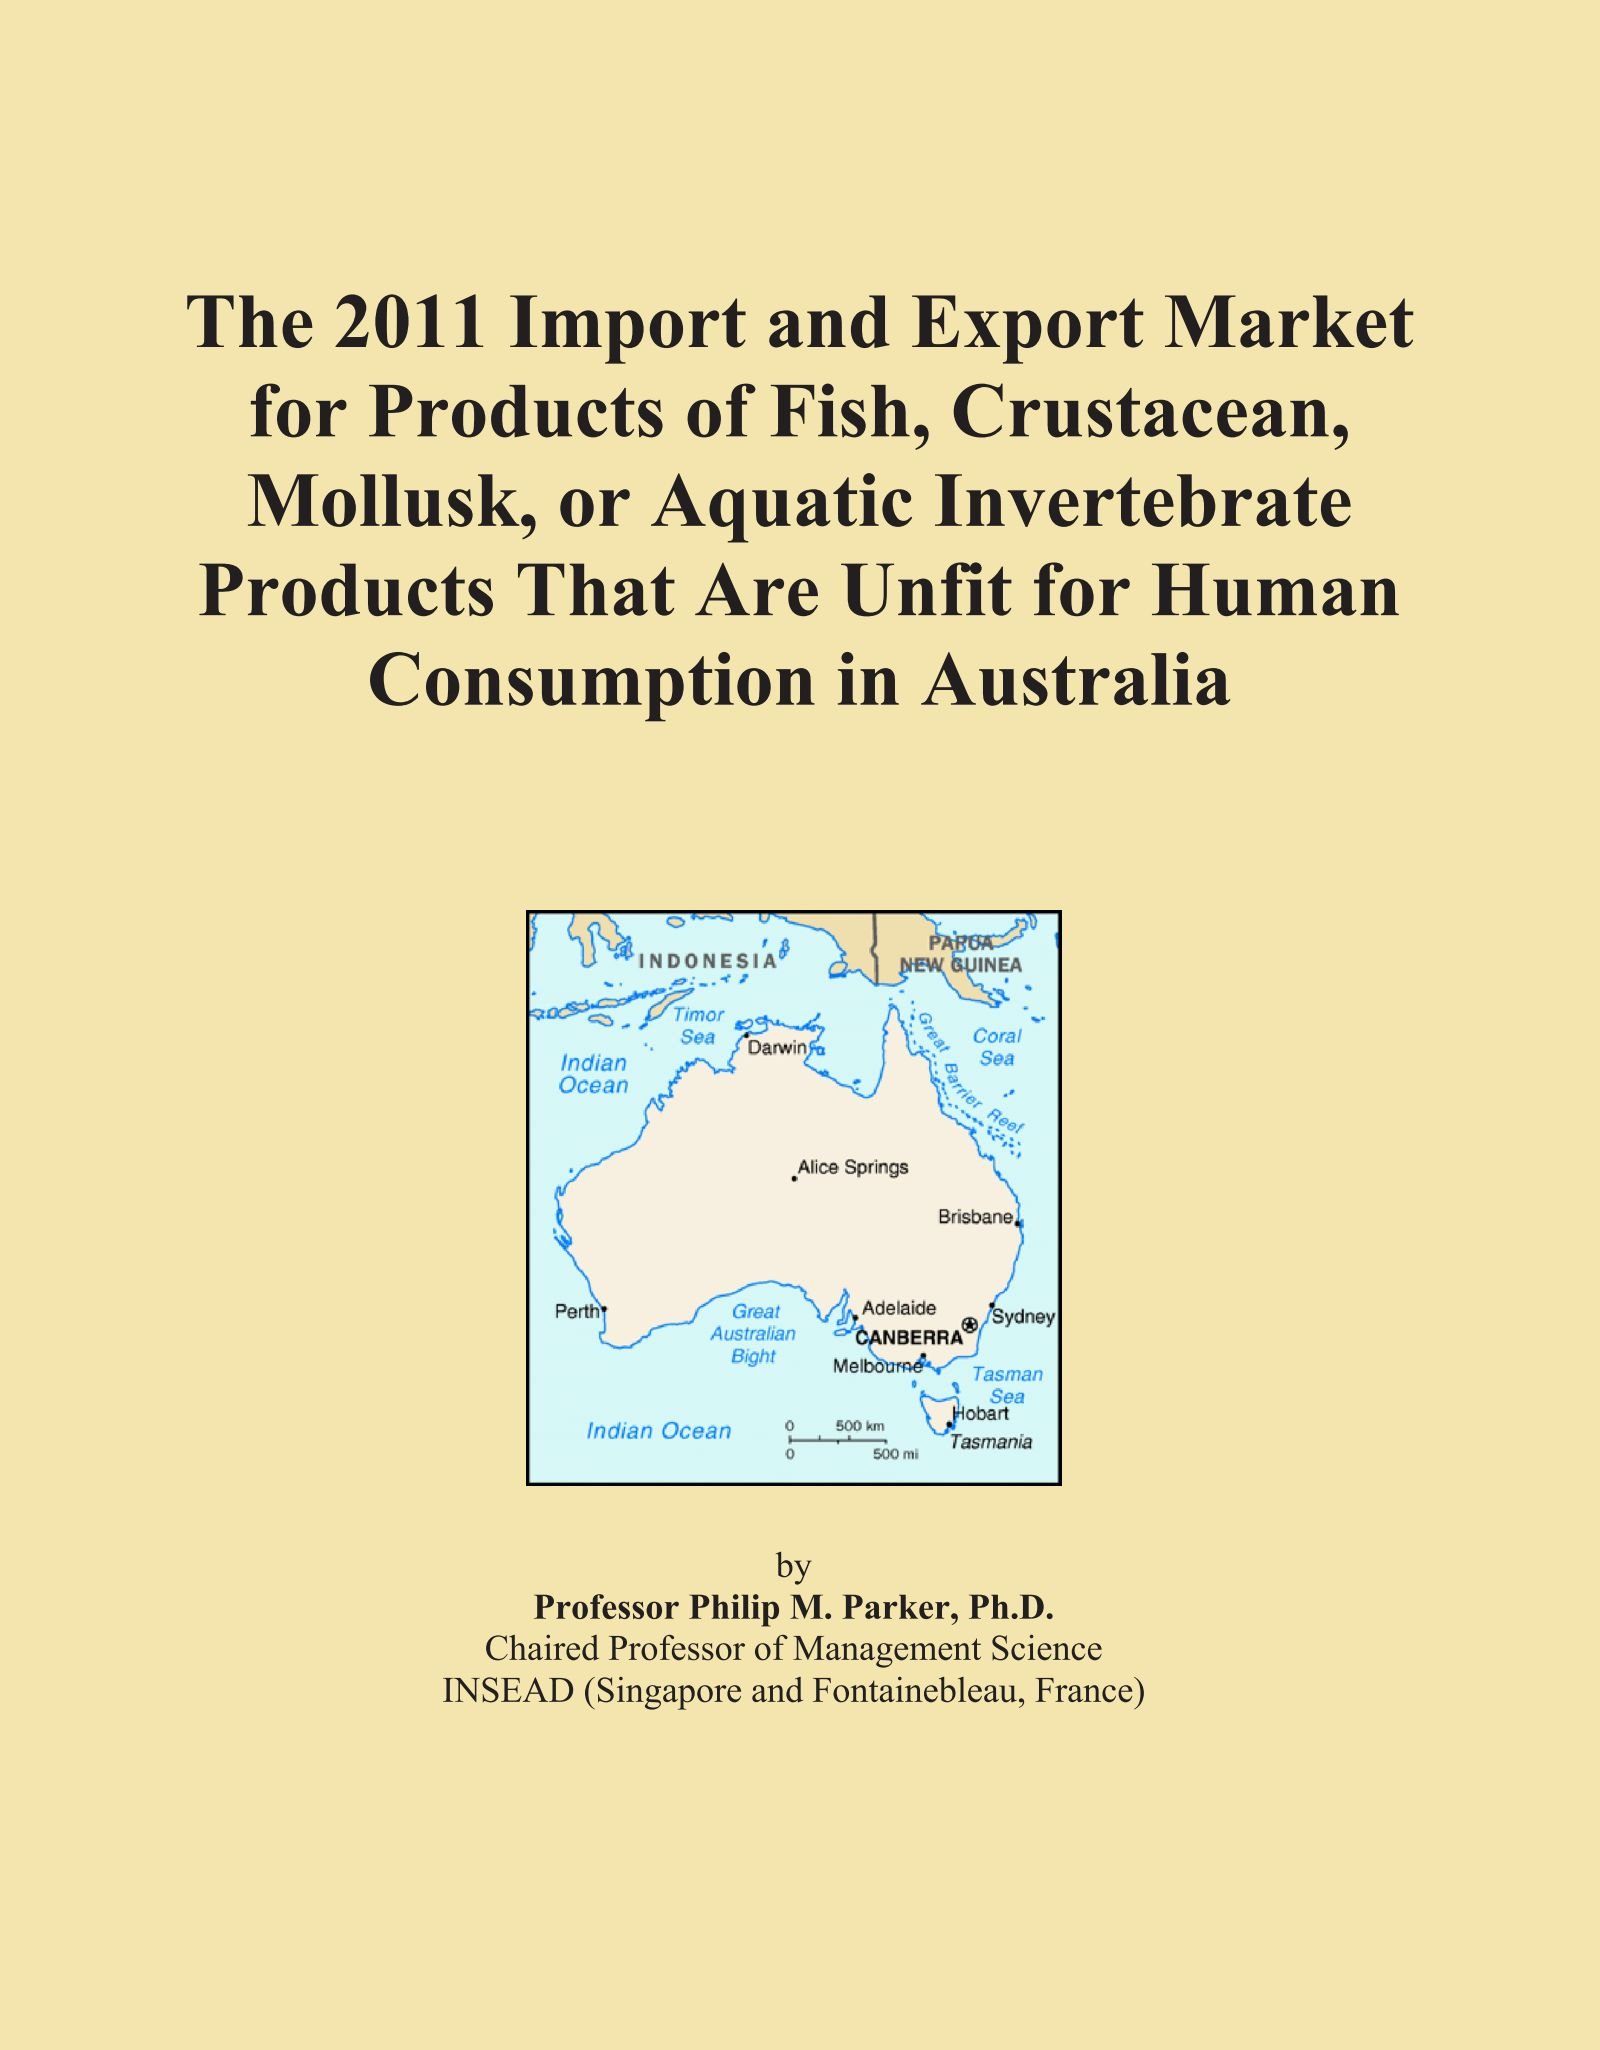 Download The 2011 Import and Export Market for Products of Fish, Crustacean, Mollusk, or Aquatic Invertebrate Products That Are Unfit for Human Consumption in Australia PDF